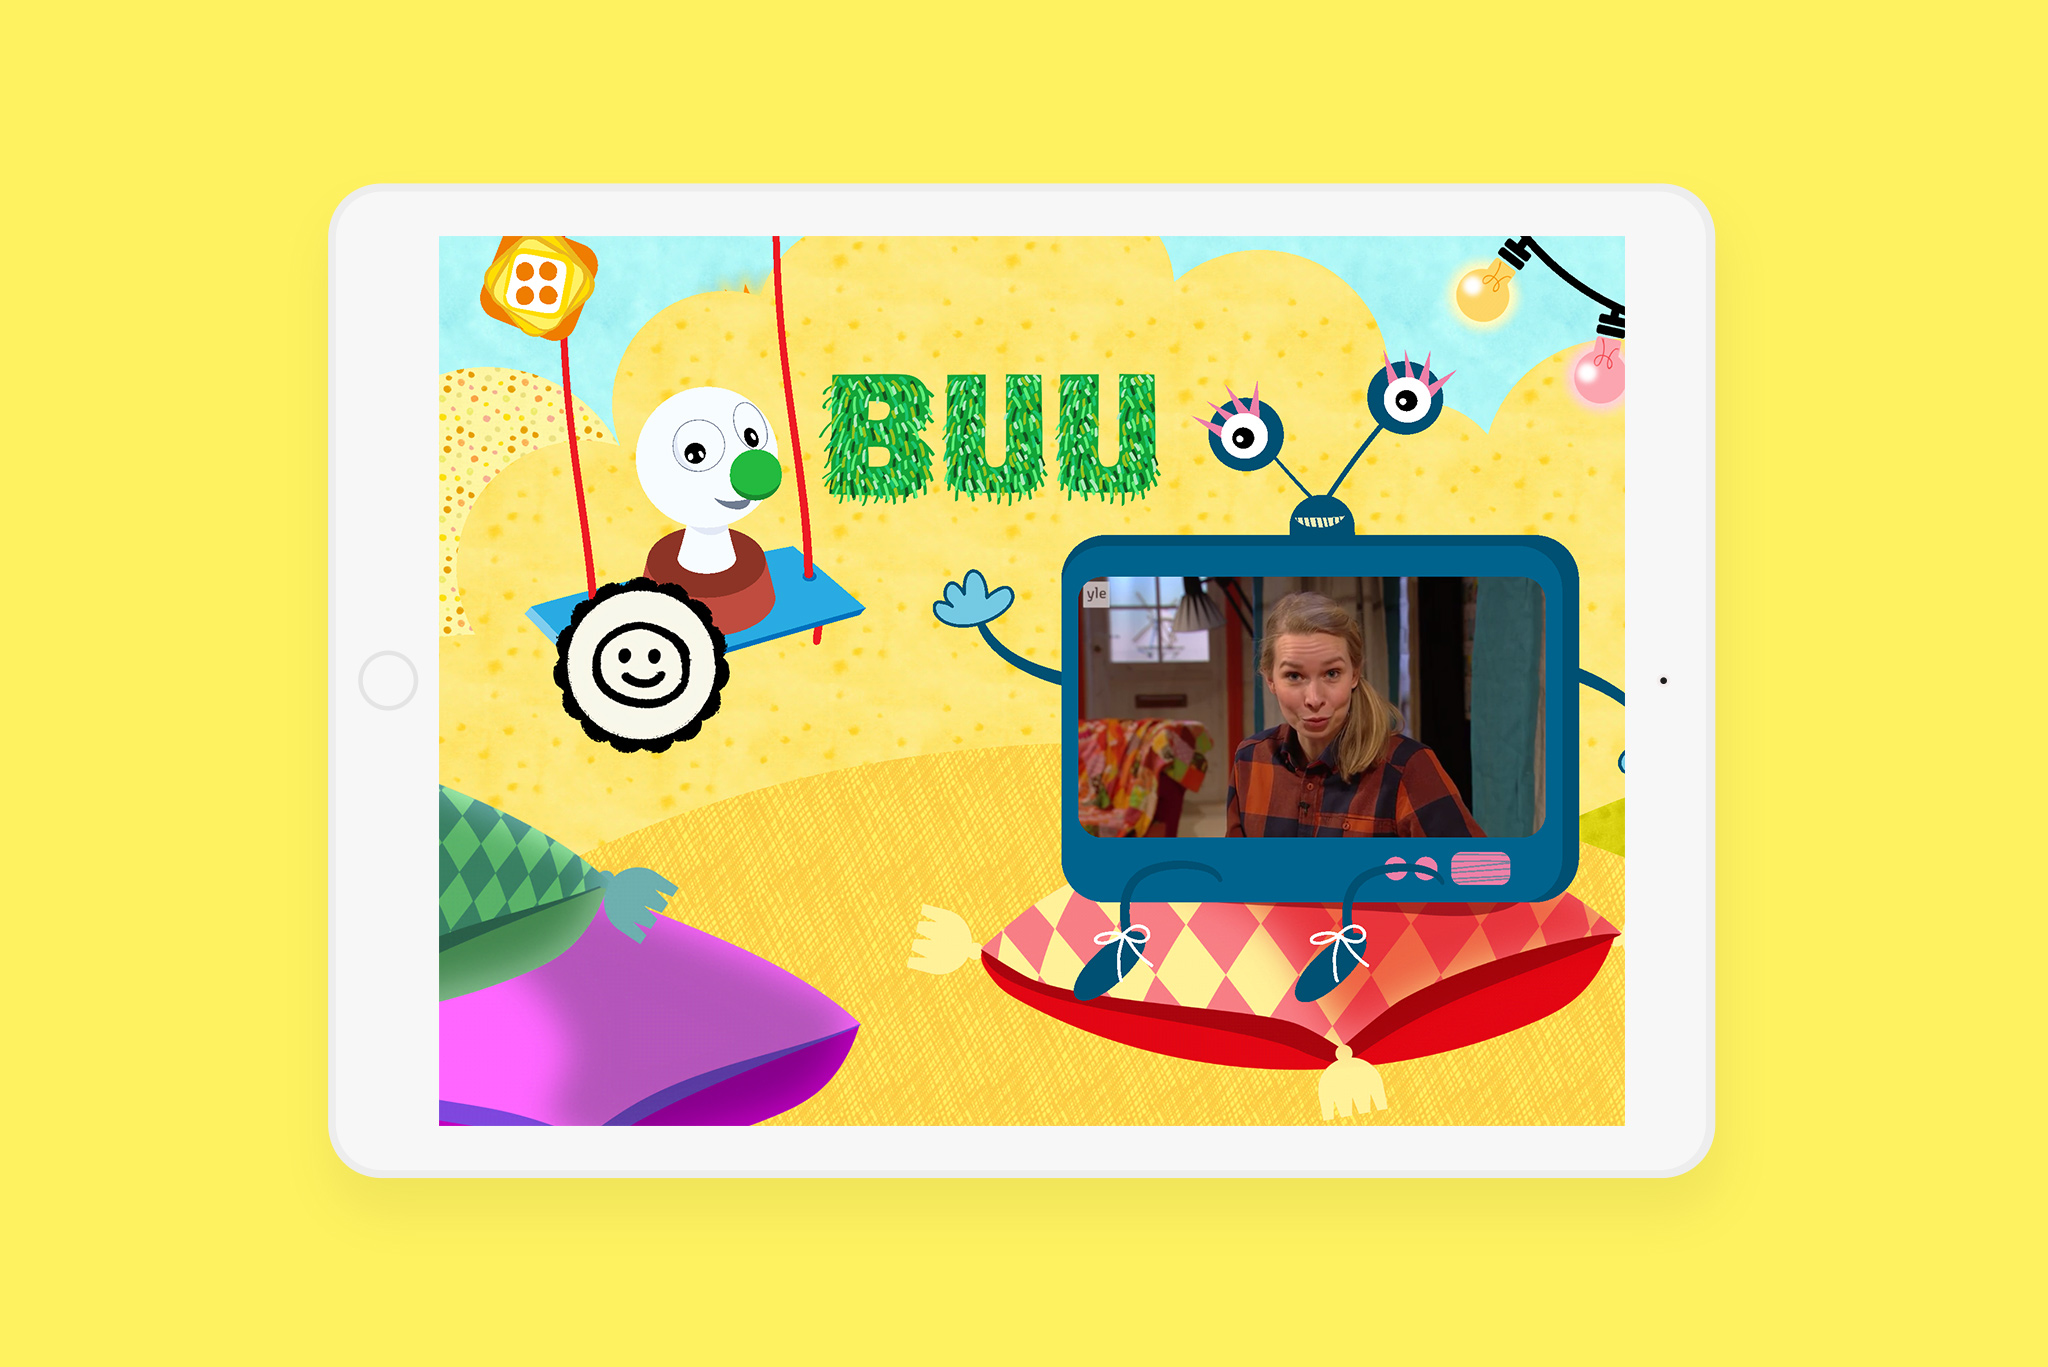 Host communicating with children through weekly or daily changing video streaming, for example a weekly question etc. The Buu App TV is an extension for the daily broadcasted TV show and additive communication channel.